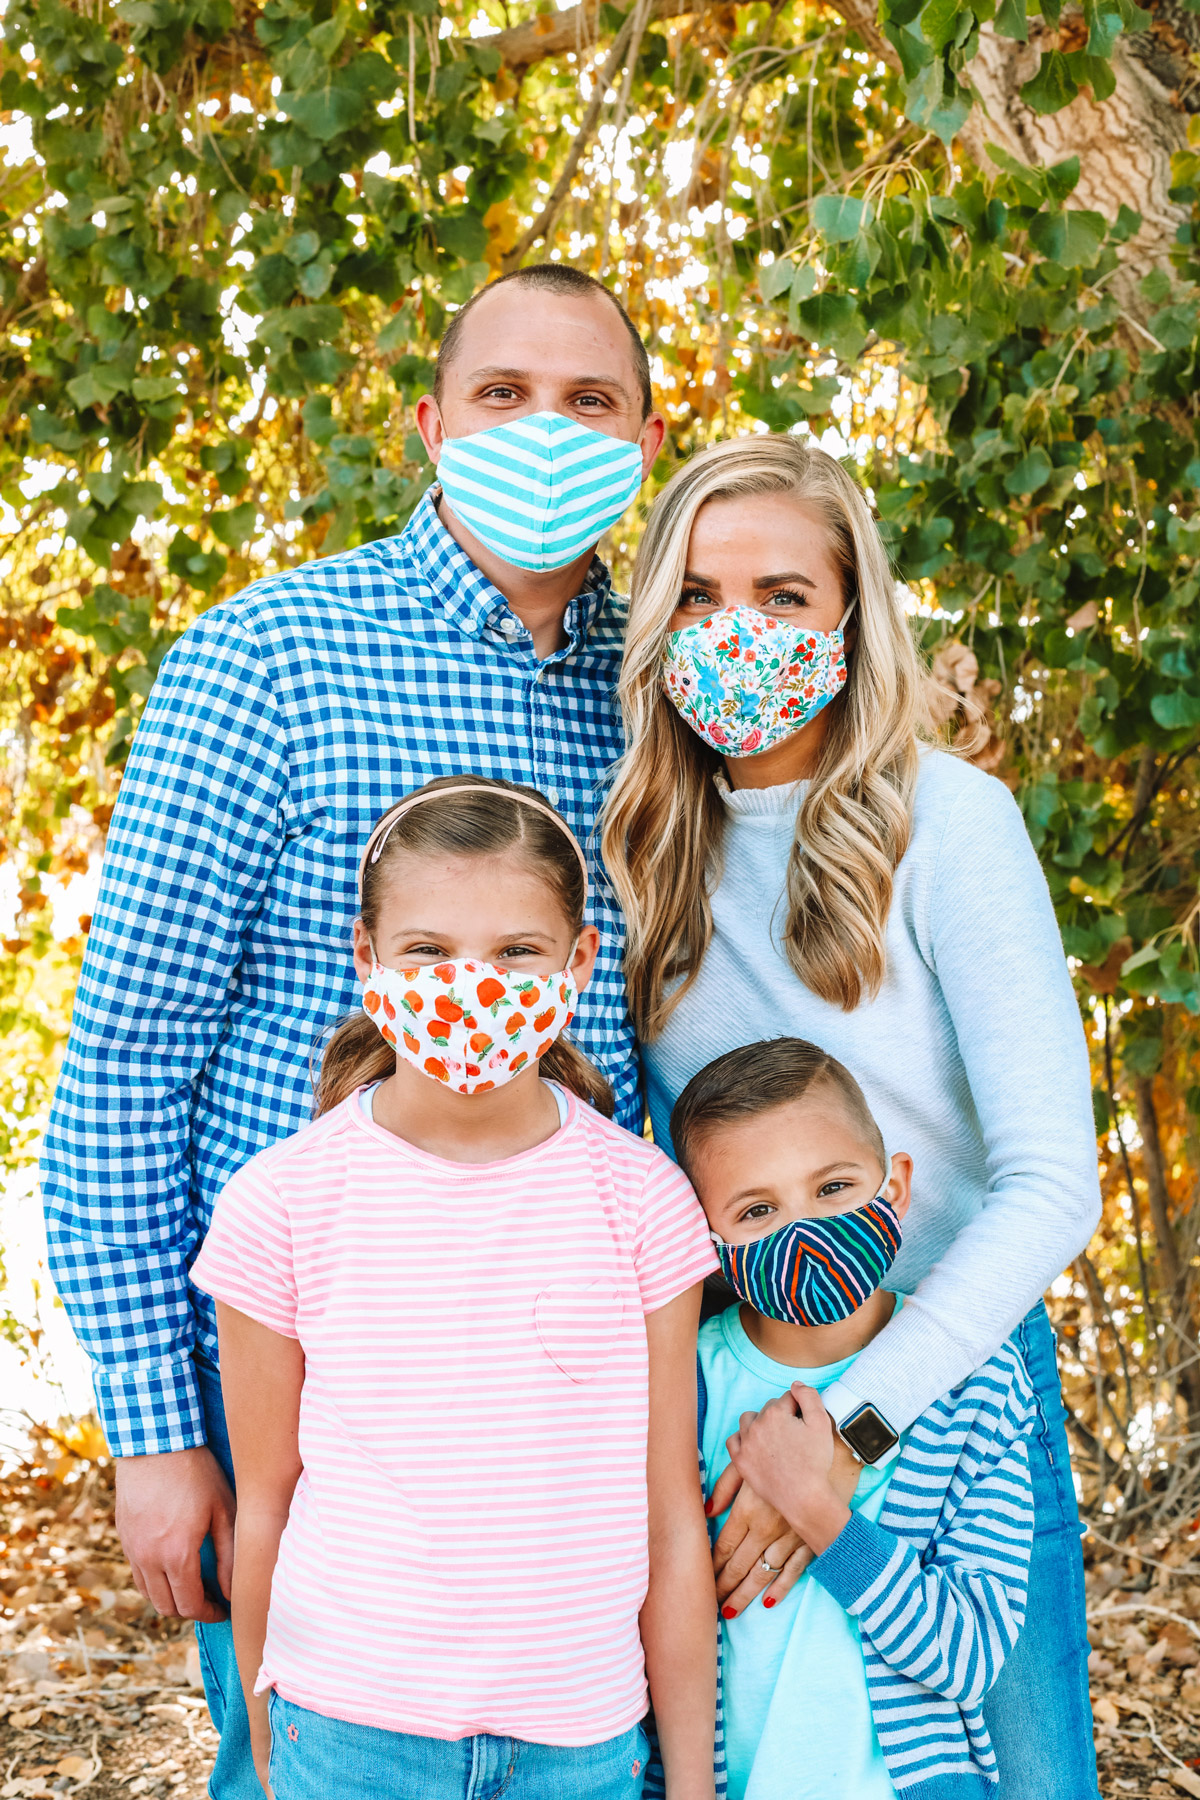 Emily from One Lovely Life with her family in front of a leafy background while wearing masks